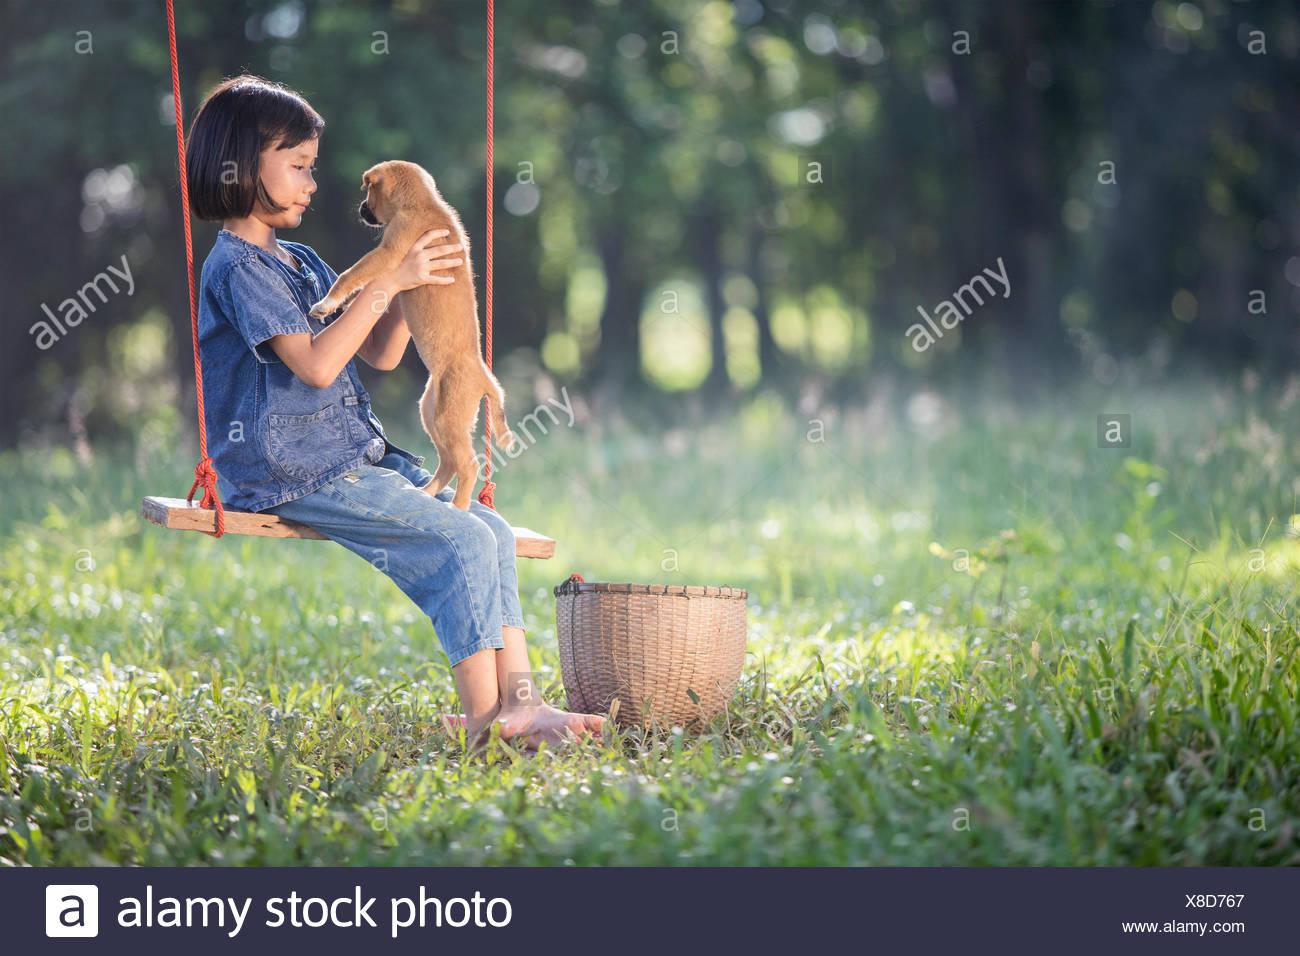 Girl on rope swing with her dog - Stock Image